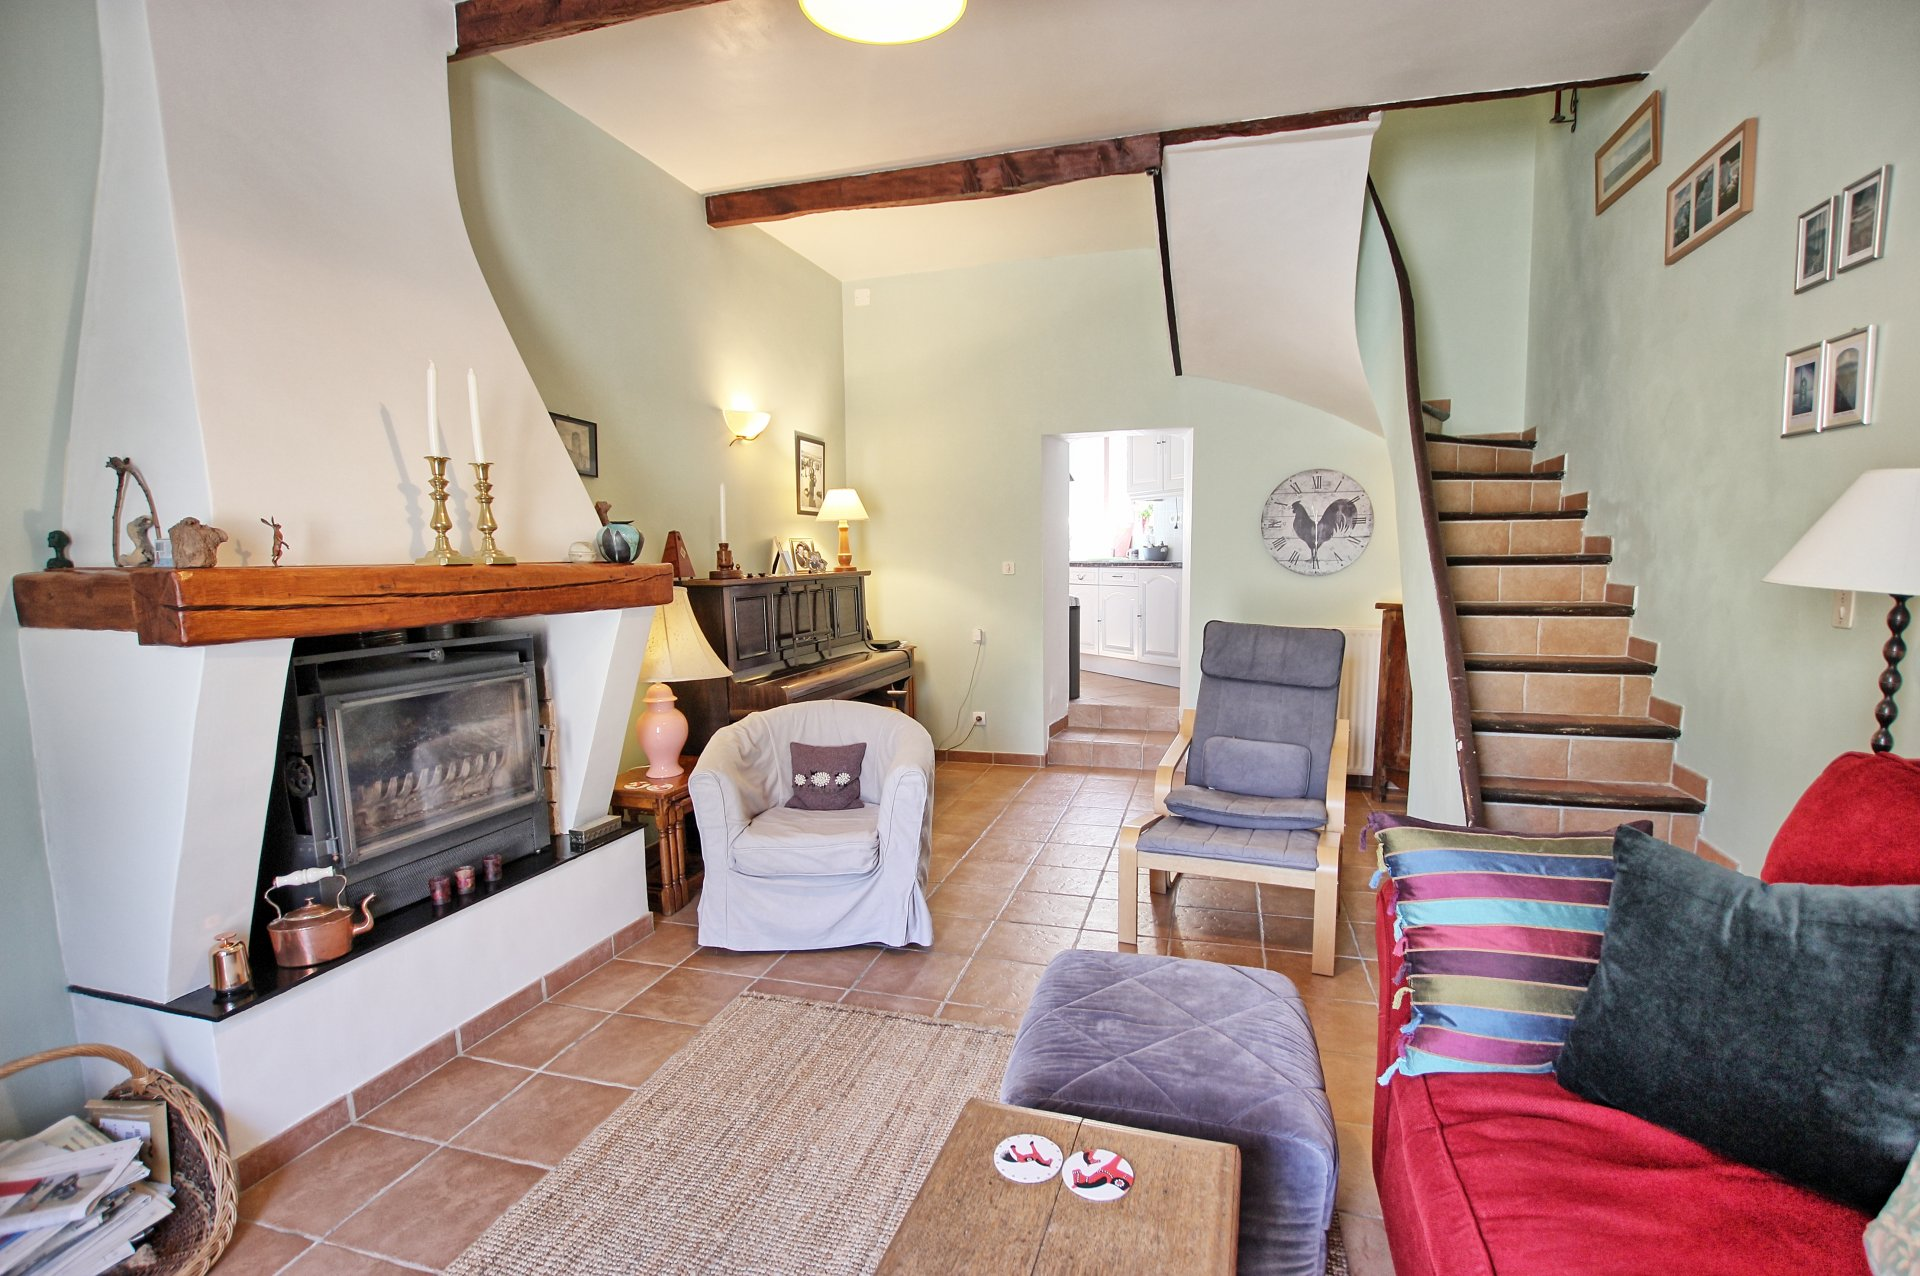 Lovely sunny 3 bedroom village house, 2 mins from commerces